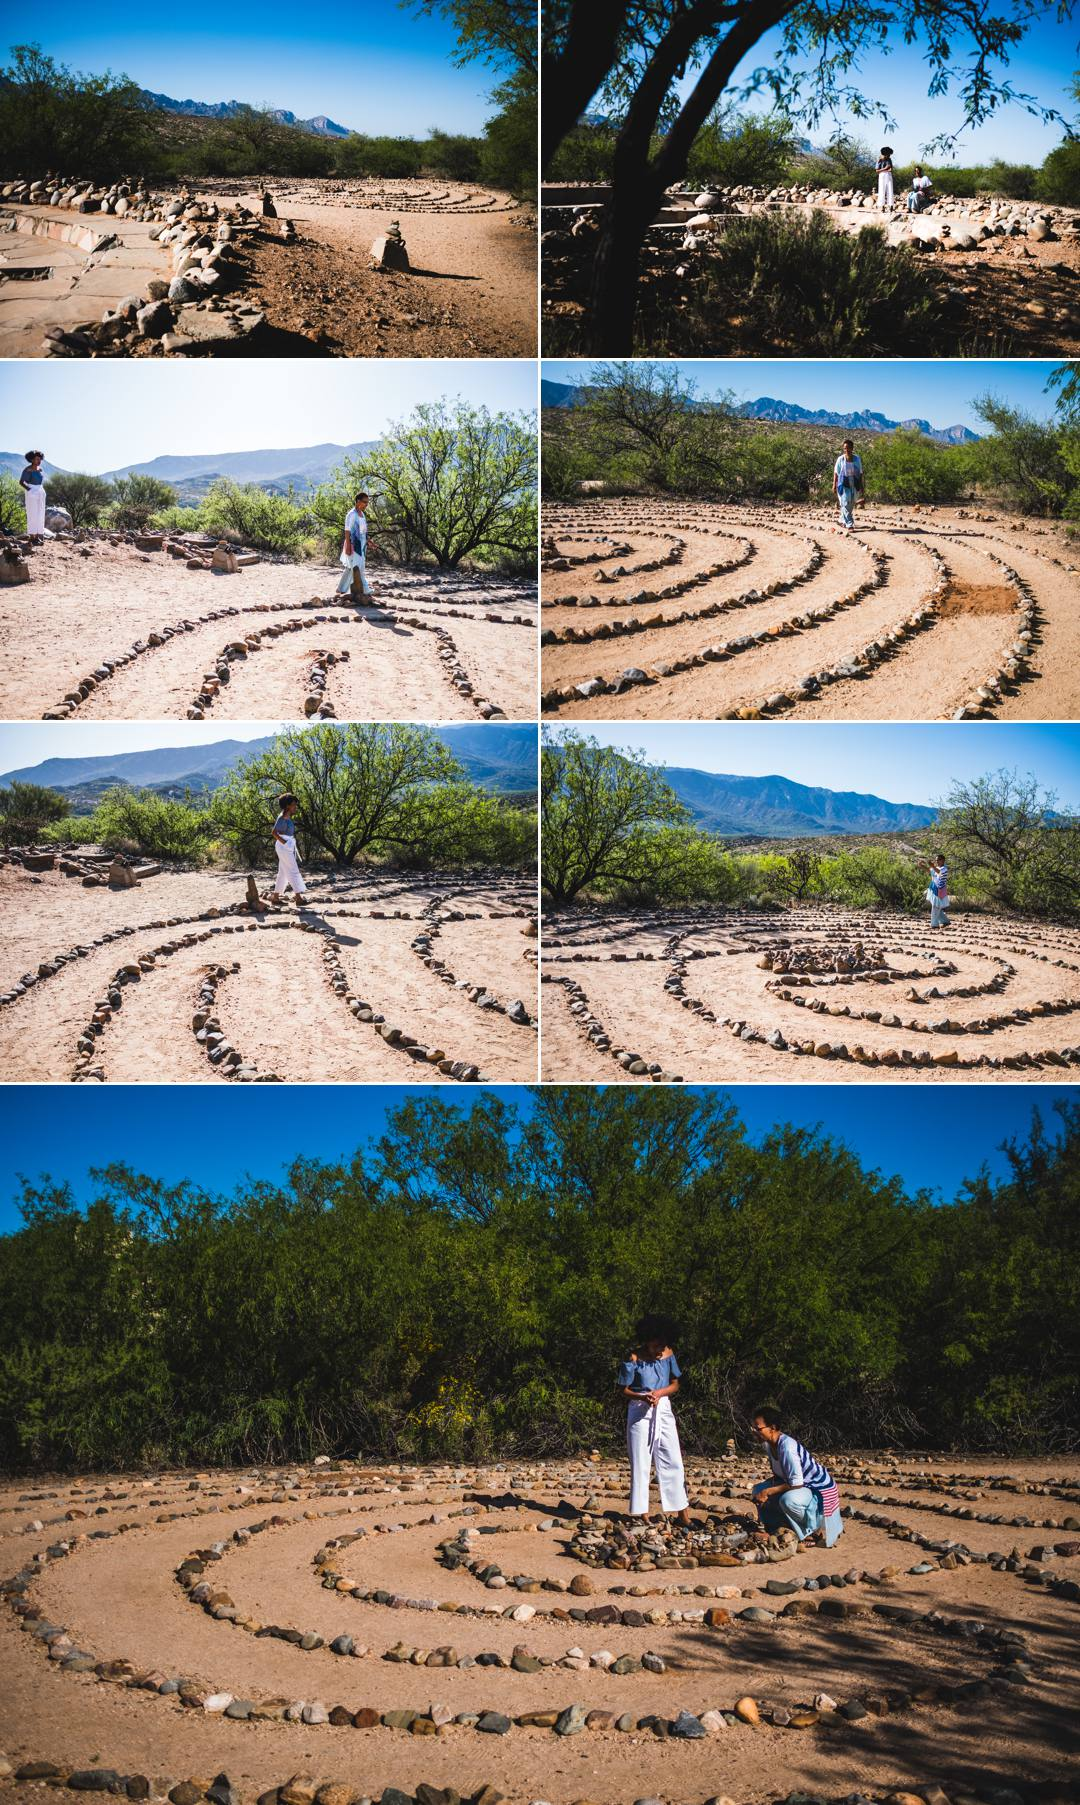 Like this labyrinth journey that invites you to release what no longer serves you while you walk around the path